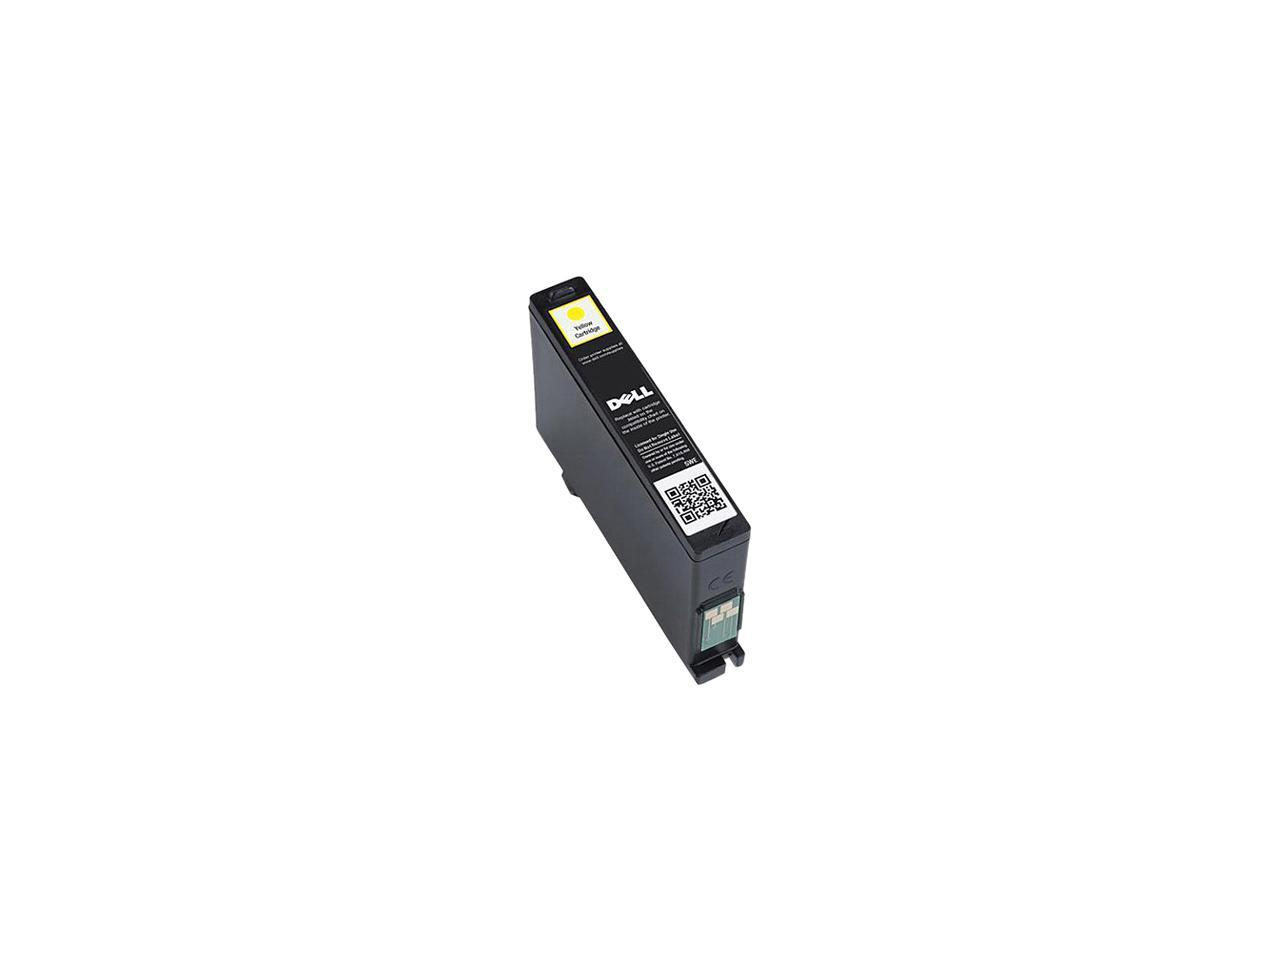 Dell 3MH11 Single Use Series 31 Ink SY for Dell V525w/V725w, Yellow